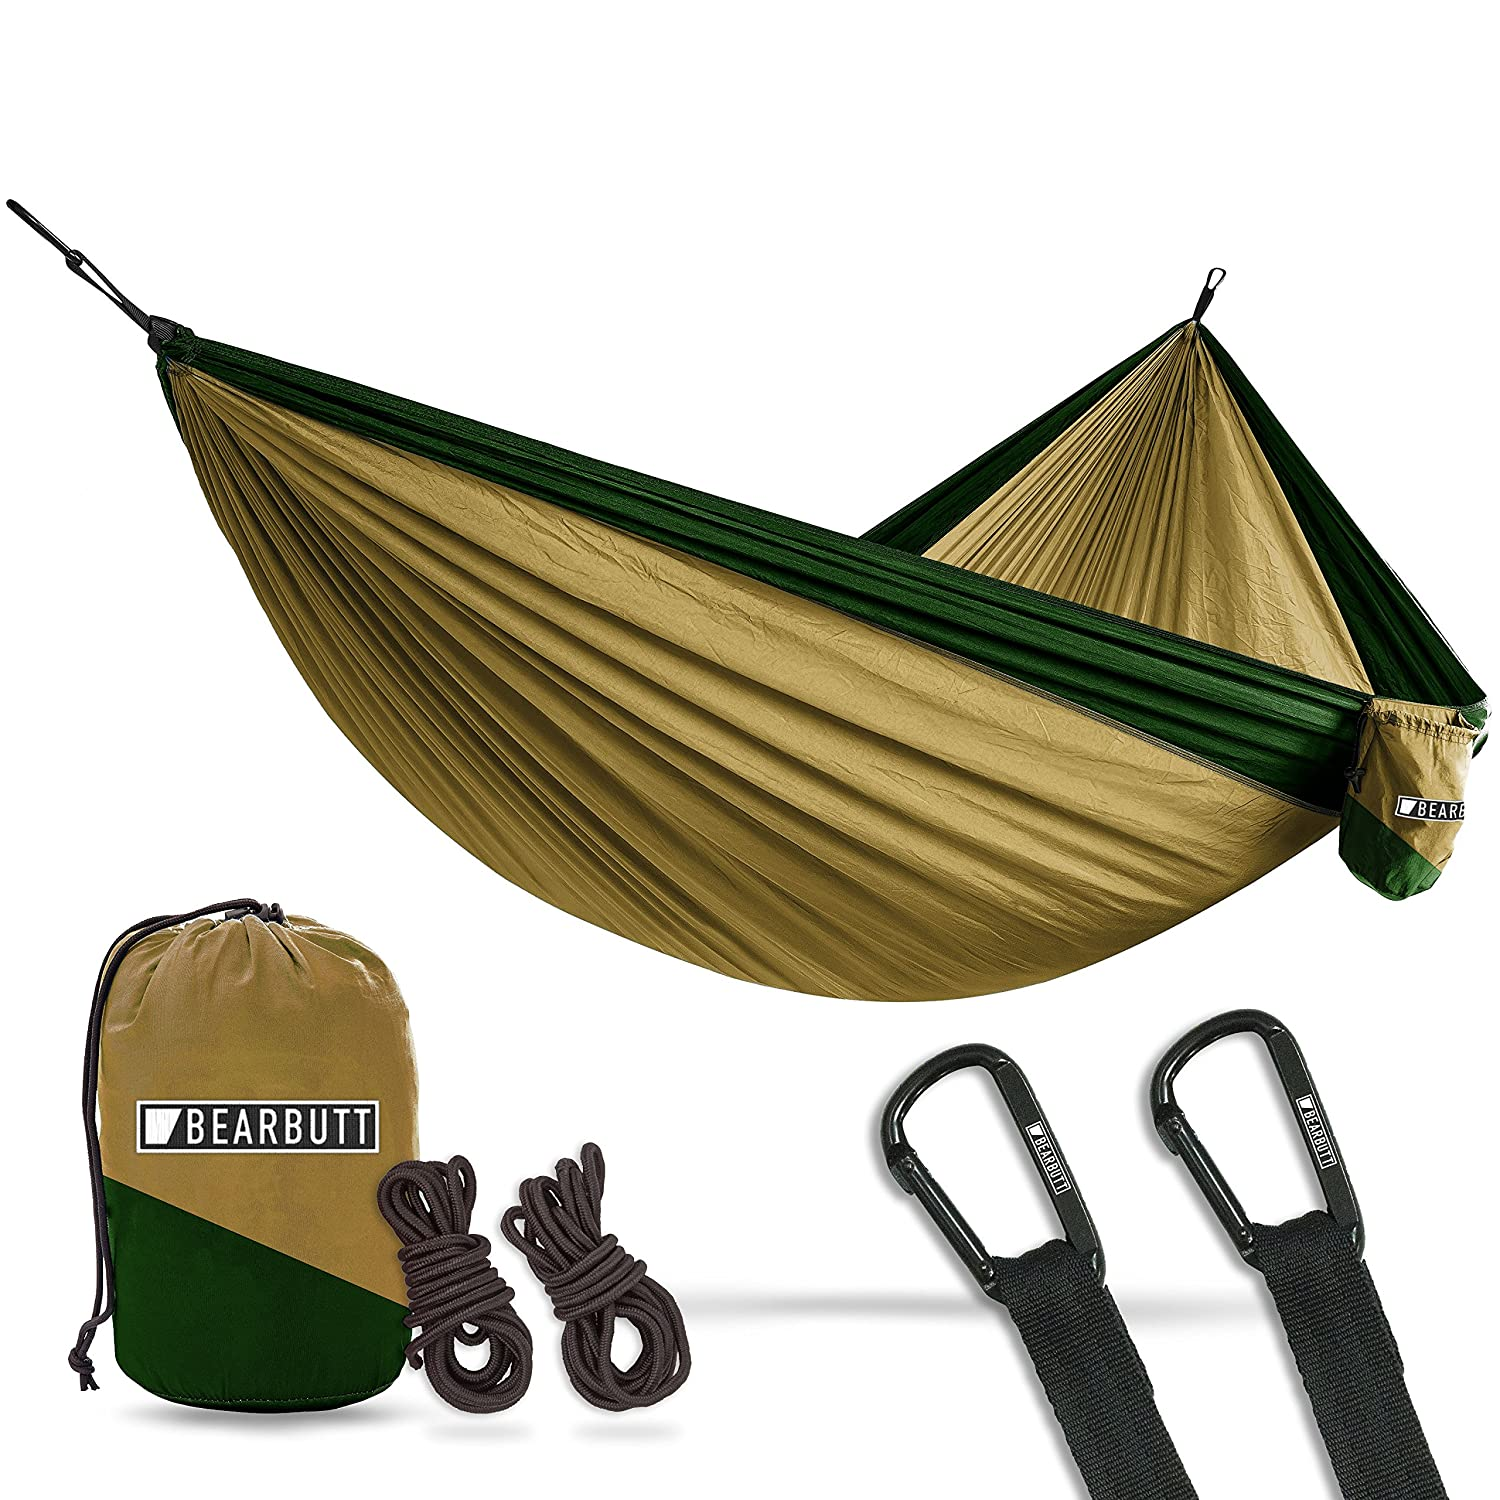 USA Brand Double Hammock That is a Portable 2 Person Hammock for Travel Bear Butt Hammocks Holds 700lb Backpacking /& Camping Gear Outdoor Tree /& Hiking Gear Camping Hammock for Outdoors